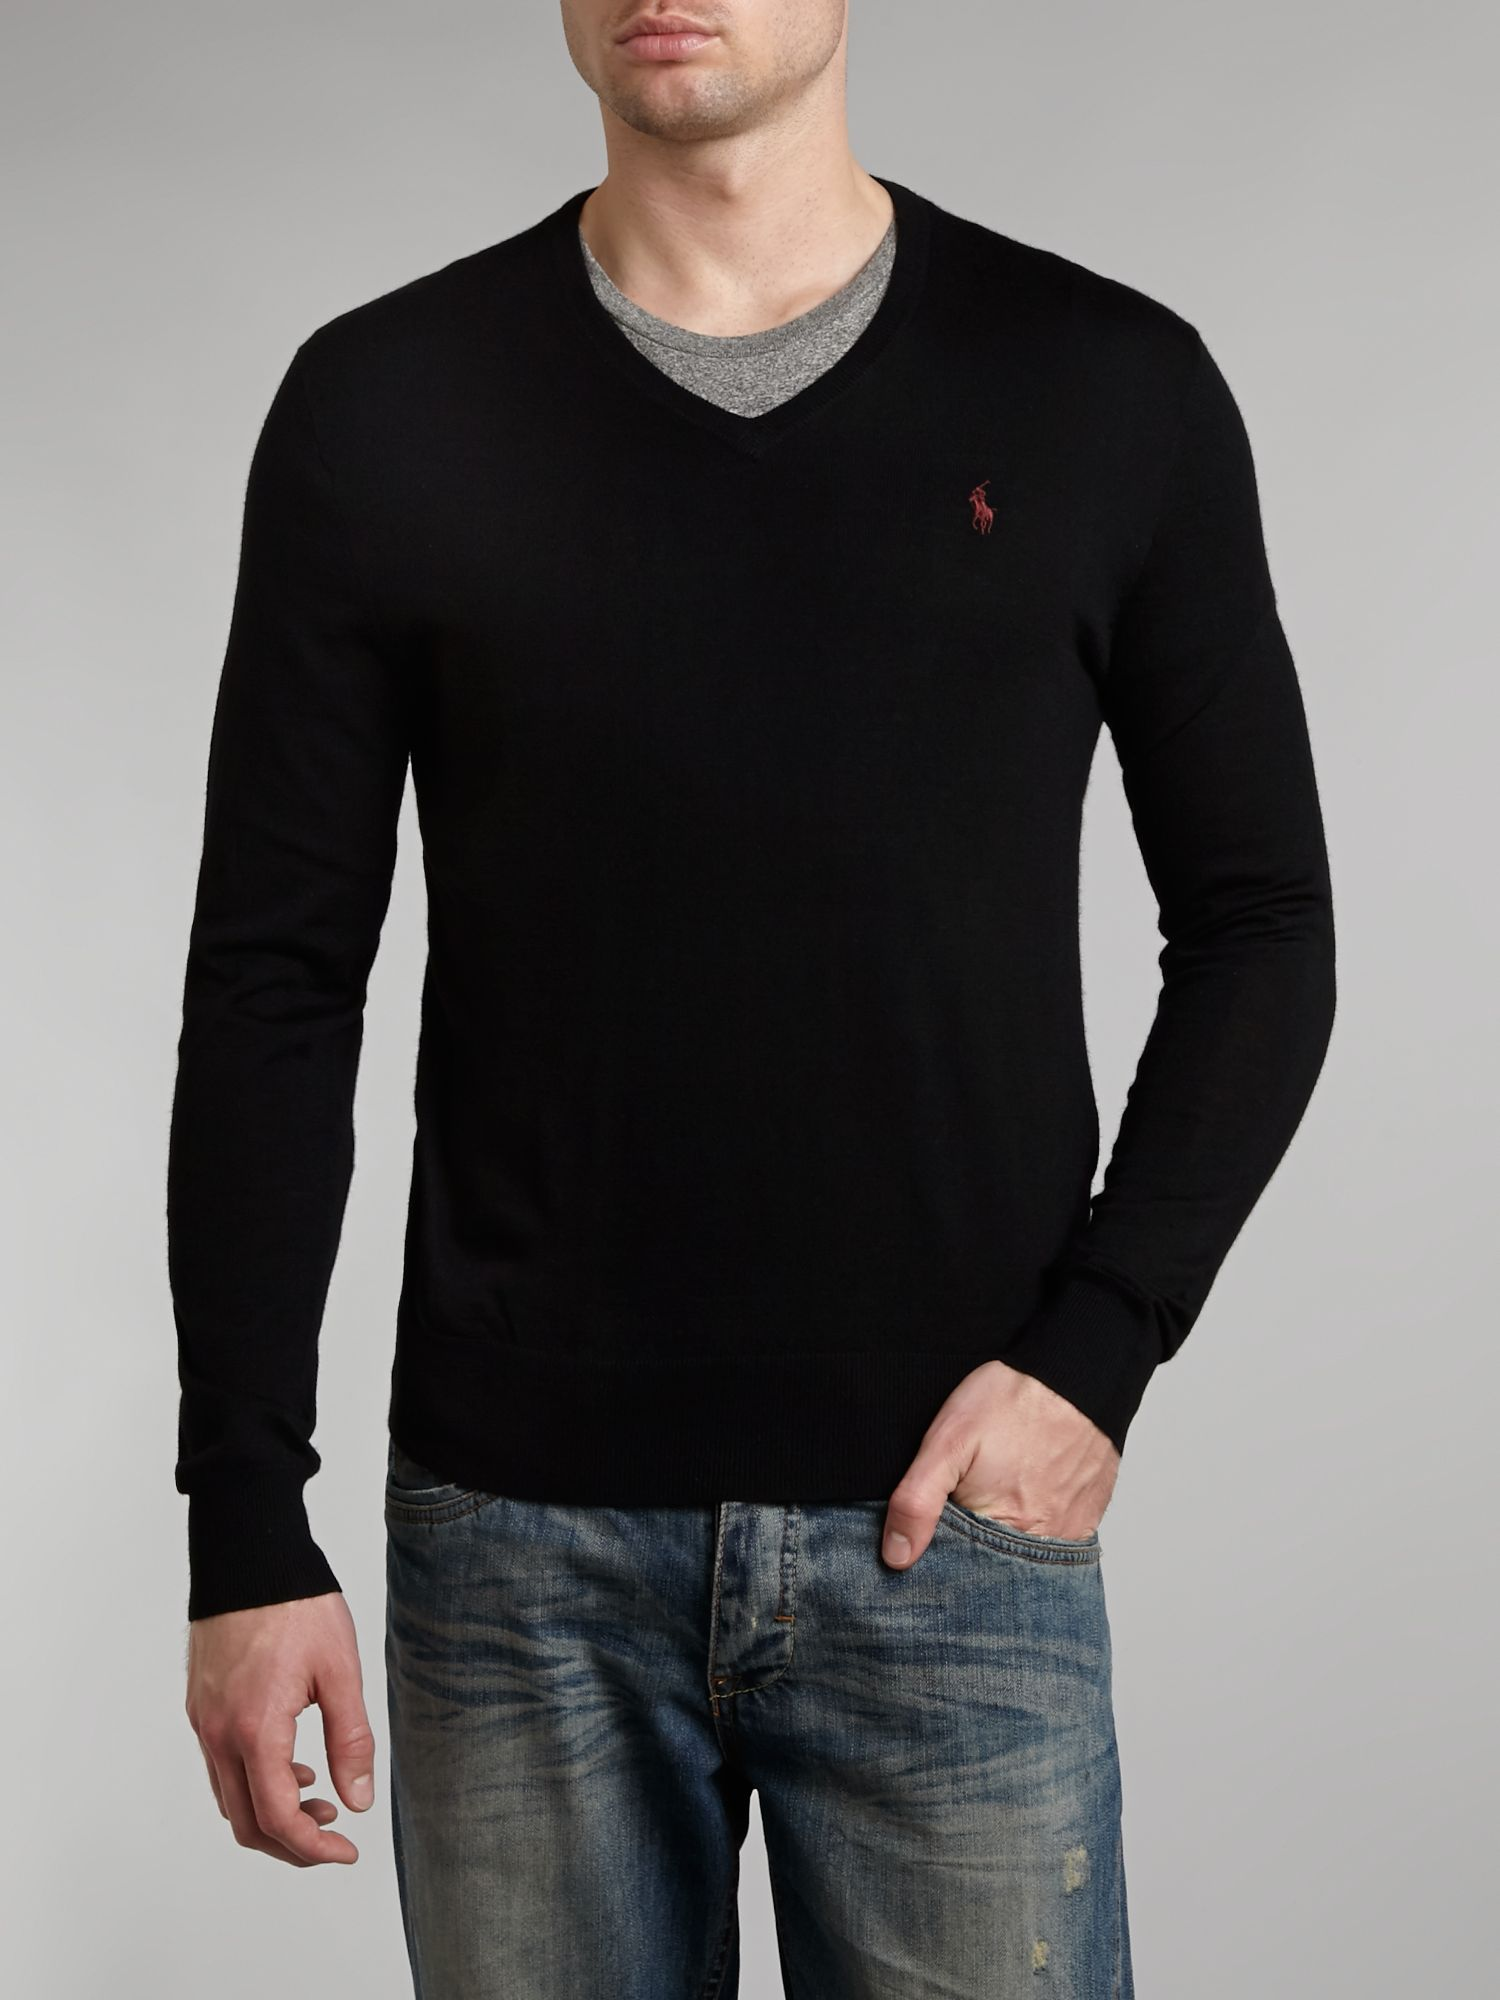 Slim fit fine knit merino wool v neck jumper